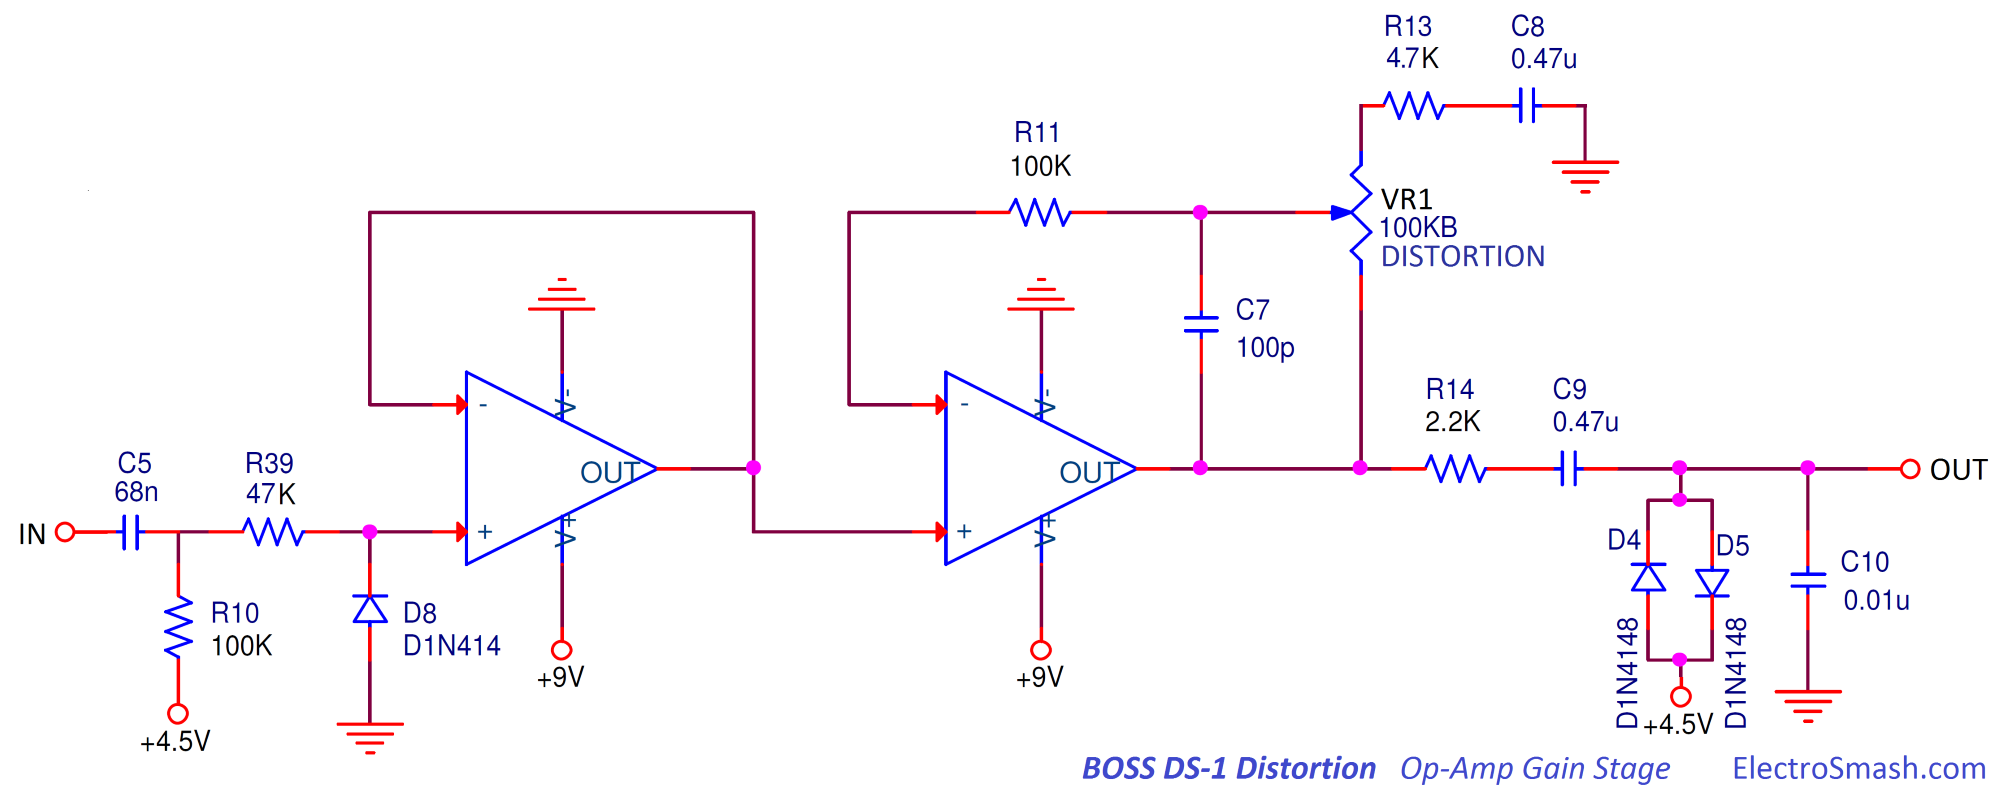 Electrosmash Boss Ds1 Distortion Analysis 3pdt Wiring Diagram Op Amp Gain Stage